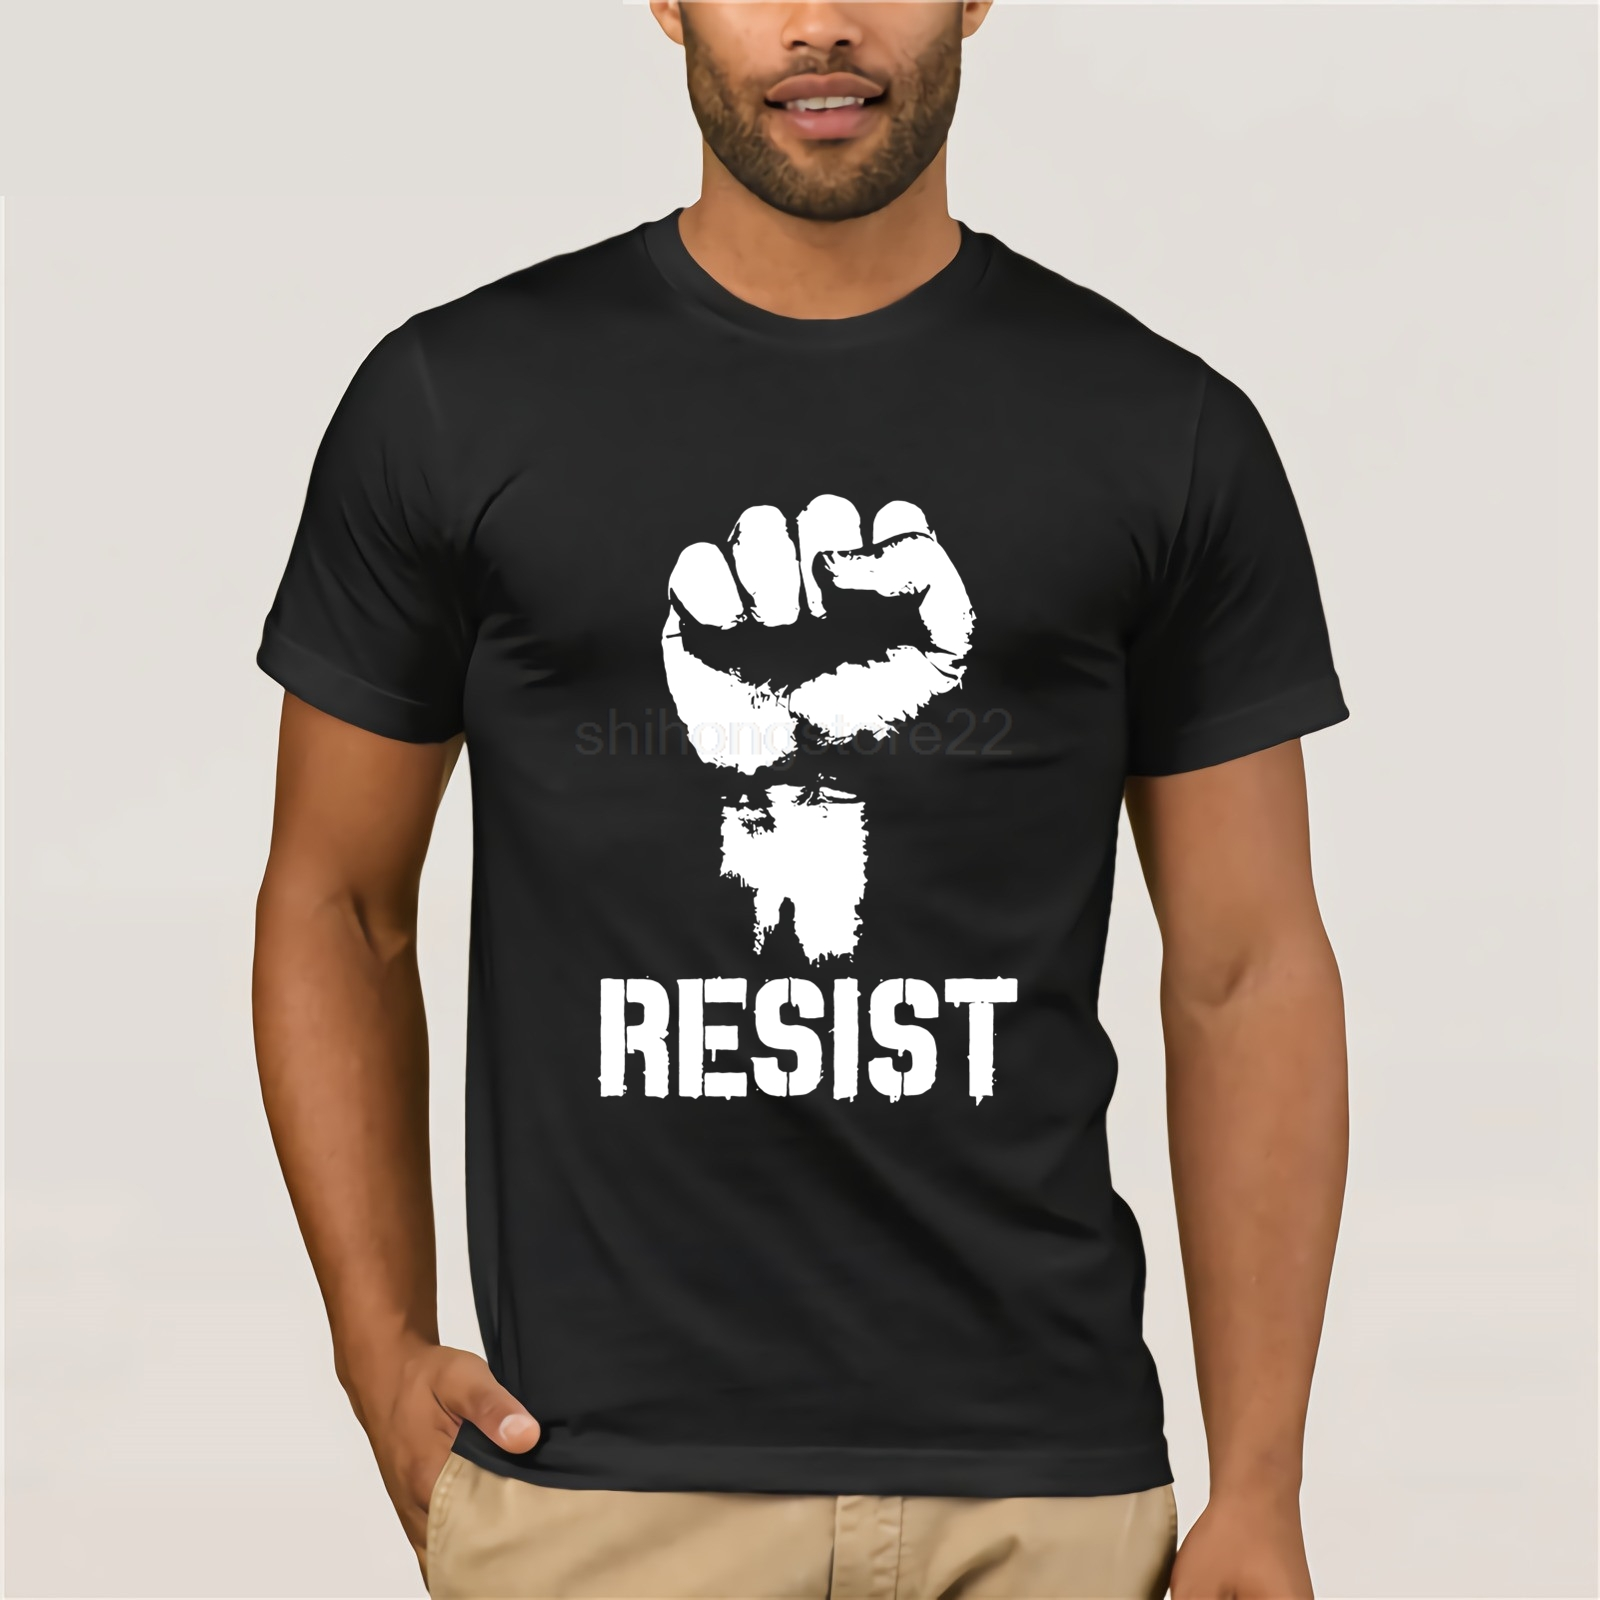 Resist Political Anti Political <font><b>Protest</b></font> Power Fist Anti Trump T Shirt Politics S image